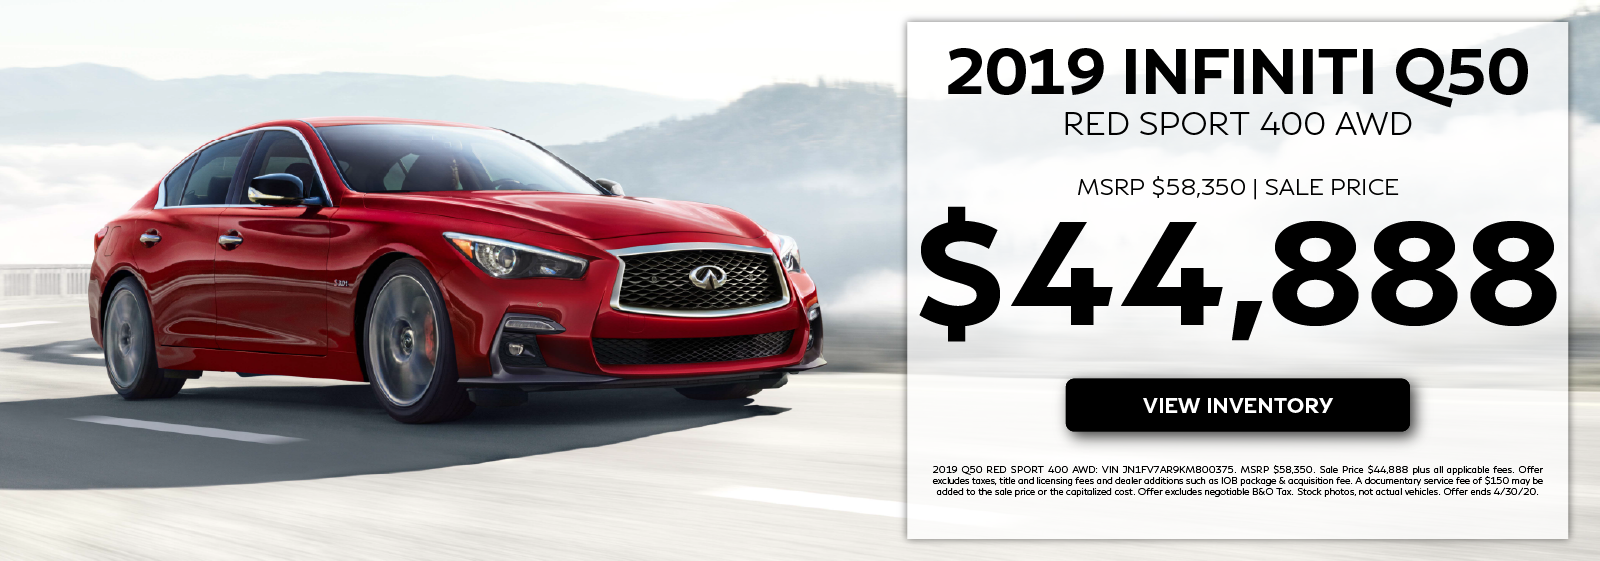 2019 Q50 Red Sport 400 - MSRP $58,350. Sale Price $44,888. Click to view inventory.